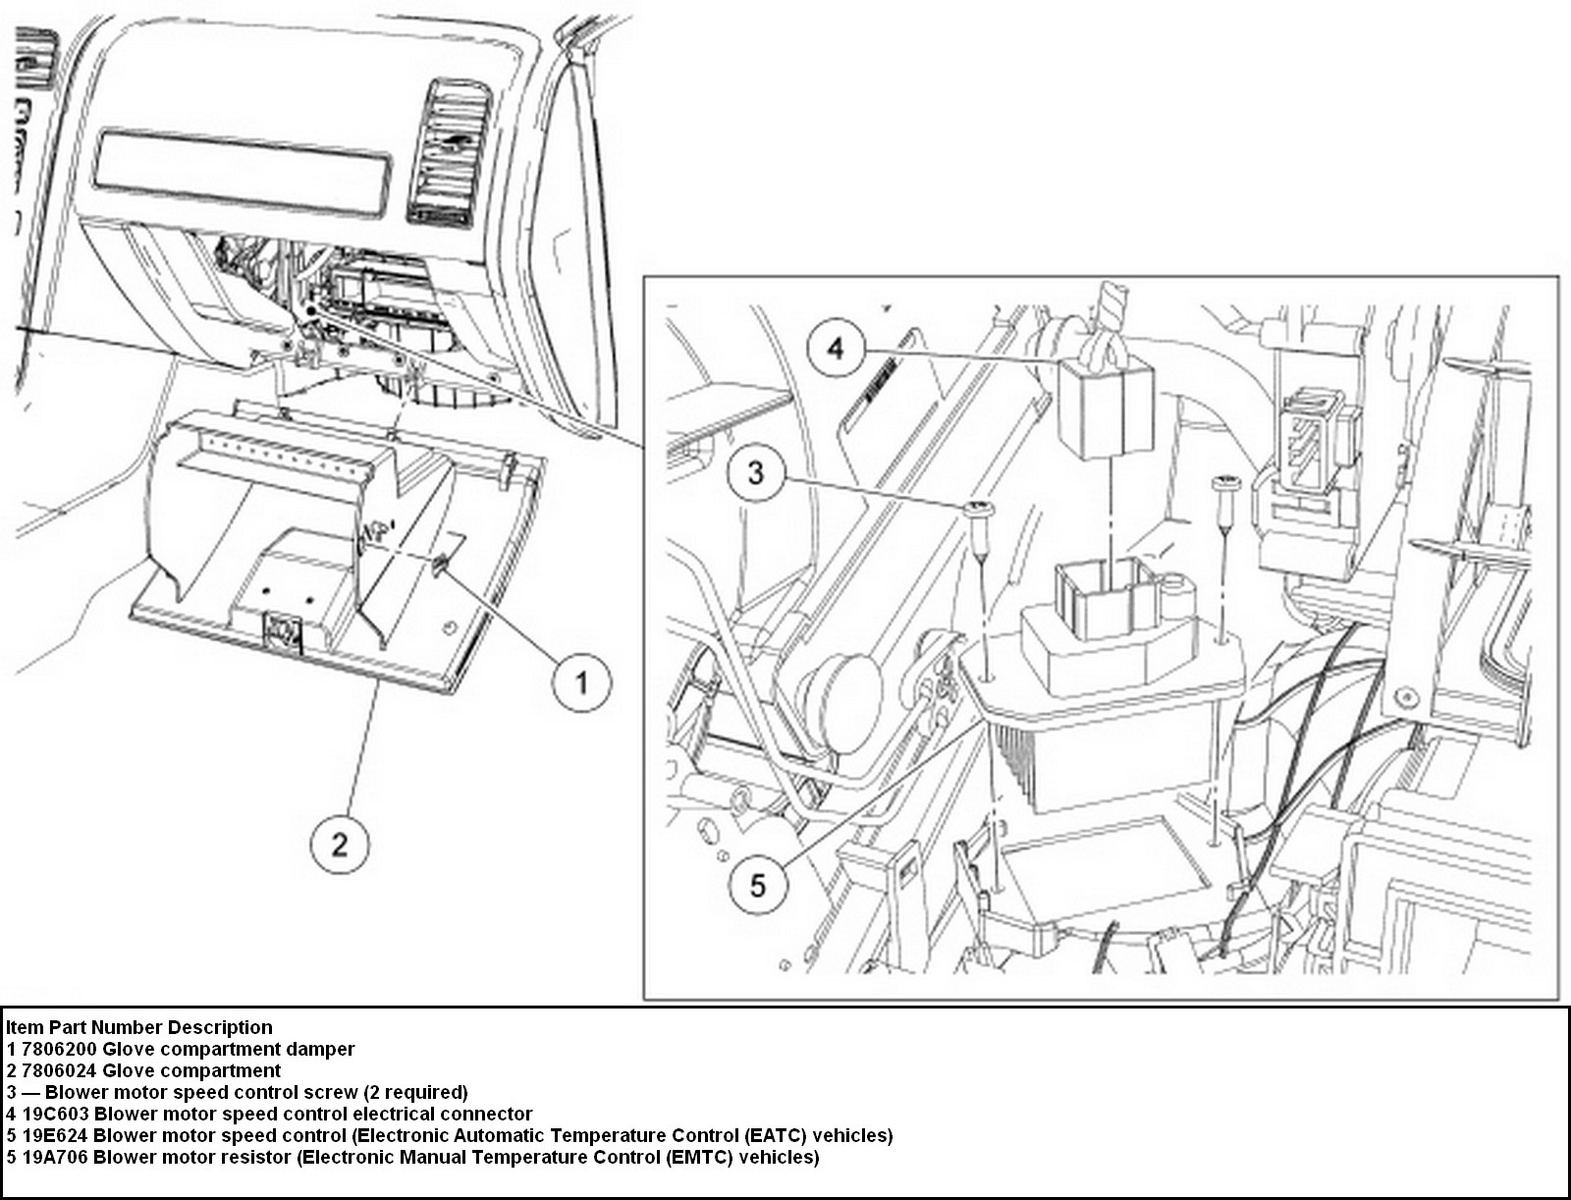 432935  mand Start Anti Theft Disarm further Wiring Diagram For 99 F250 Super Duty 4x4 4r100 Transmission in addition Radio Wiring Diagram For 2004 Ford F 250 furthermore 4jh55 Ford Need Wiring Diagram Tail Lights Only Work Winter as well 1998 F150 Steering Column Diagram. on 1999 ford f 250 super duty fuse diagram